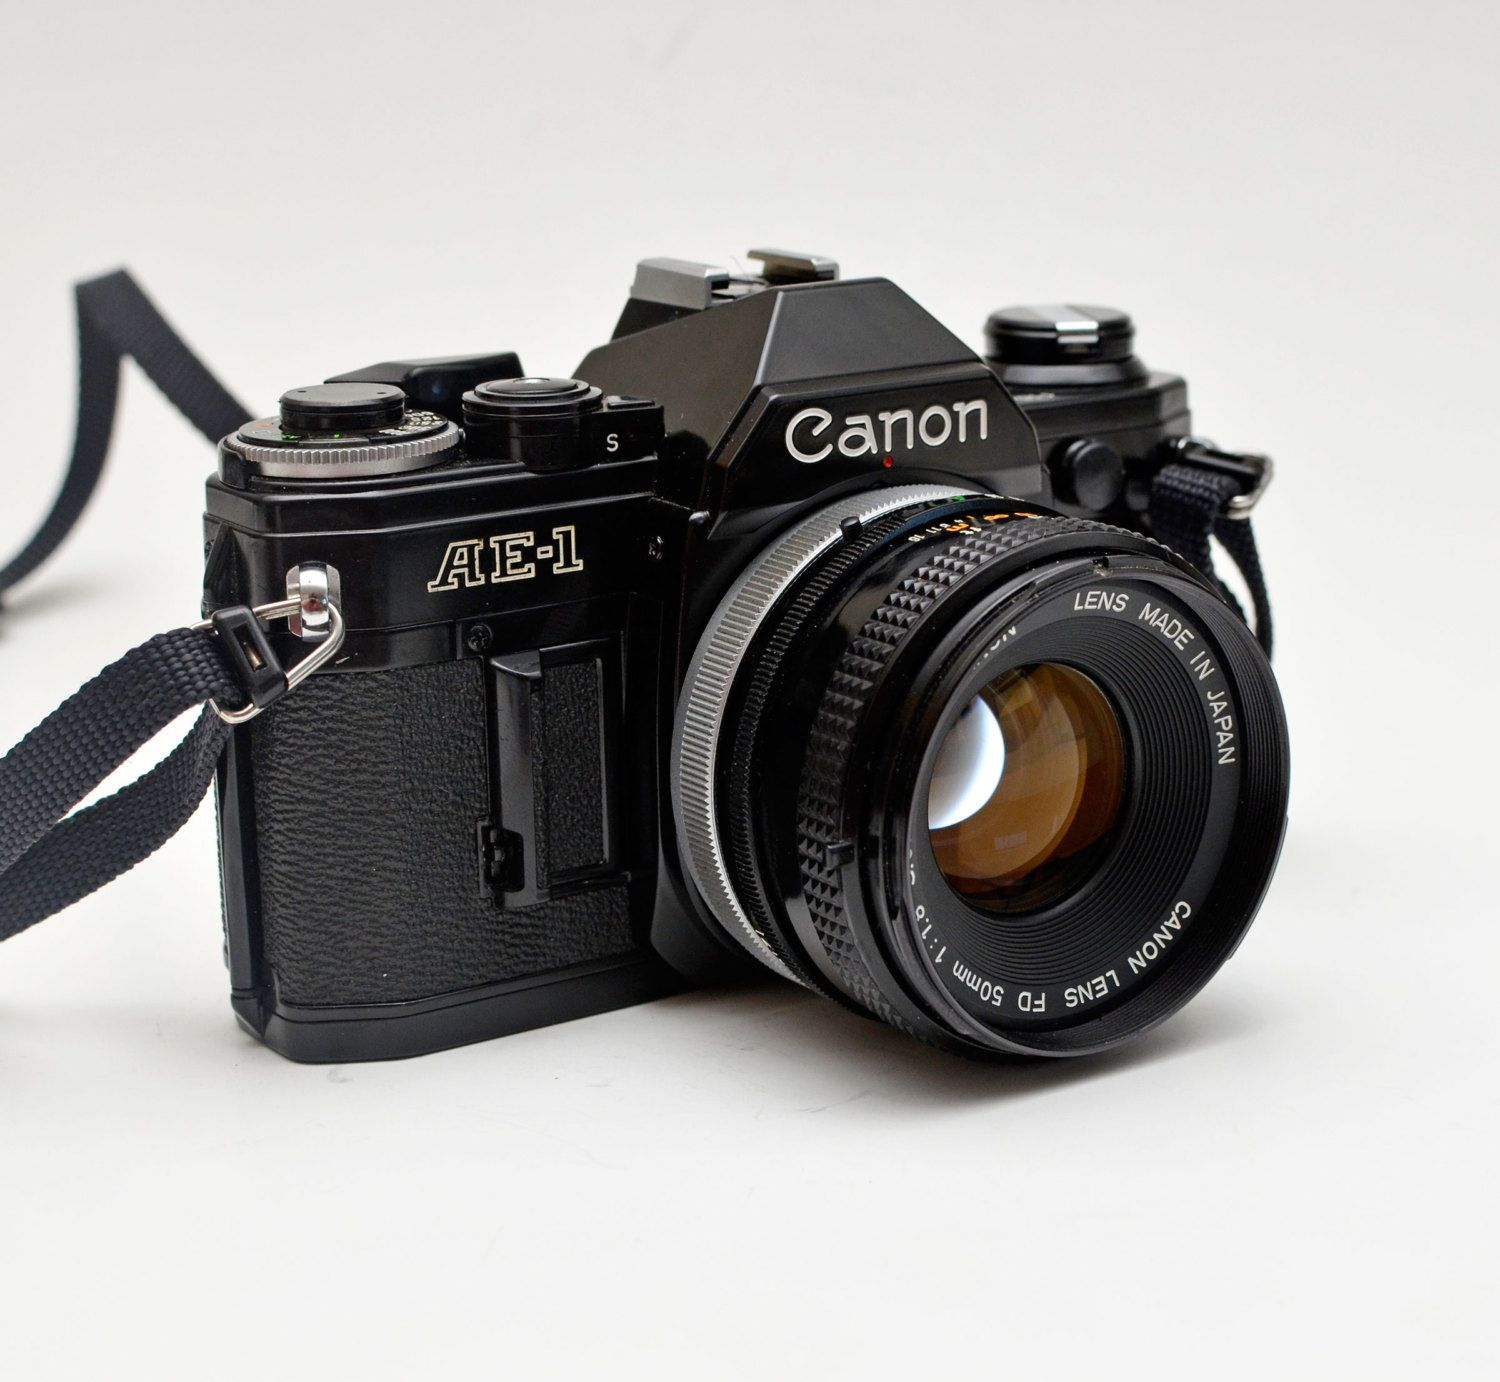 Film Camera Black Body Canon Ae 1 35mm Film Slr Camera With Canon F1 8